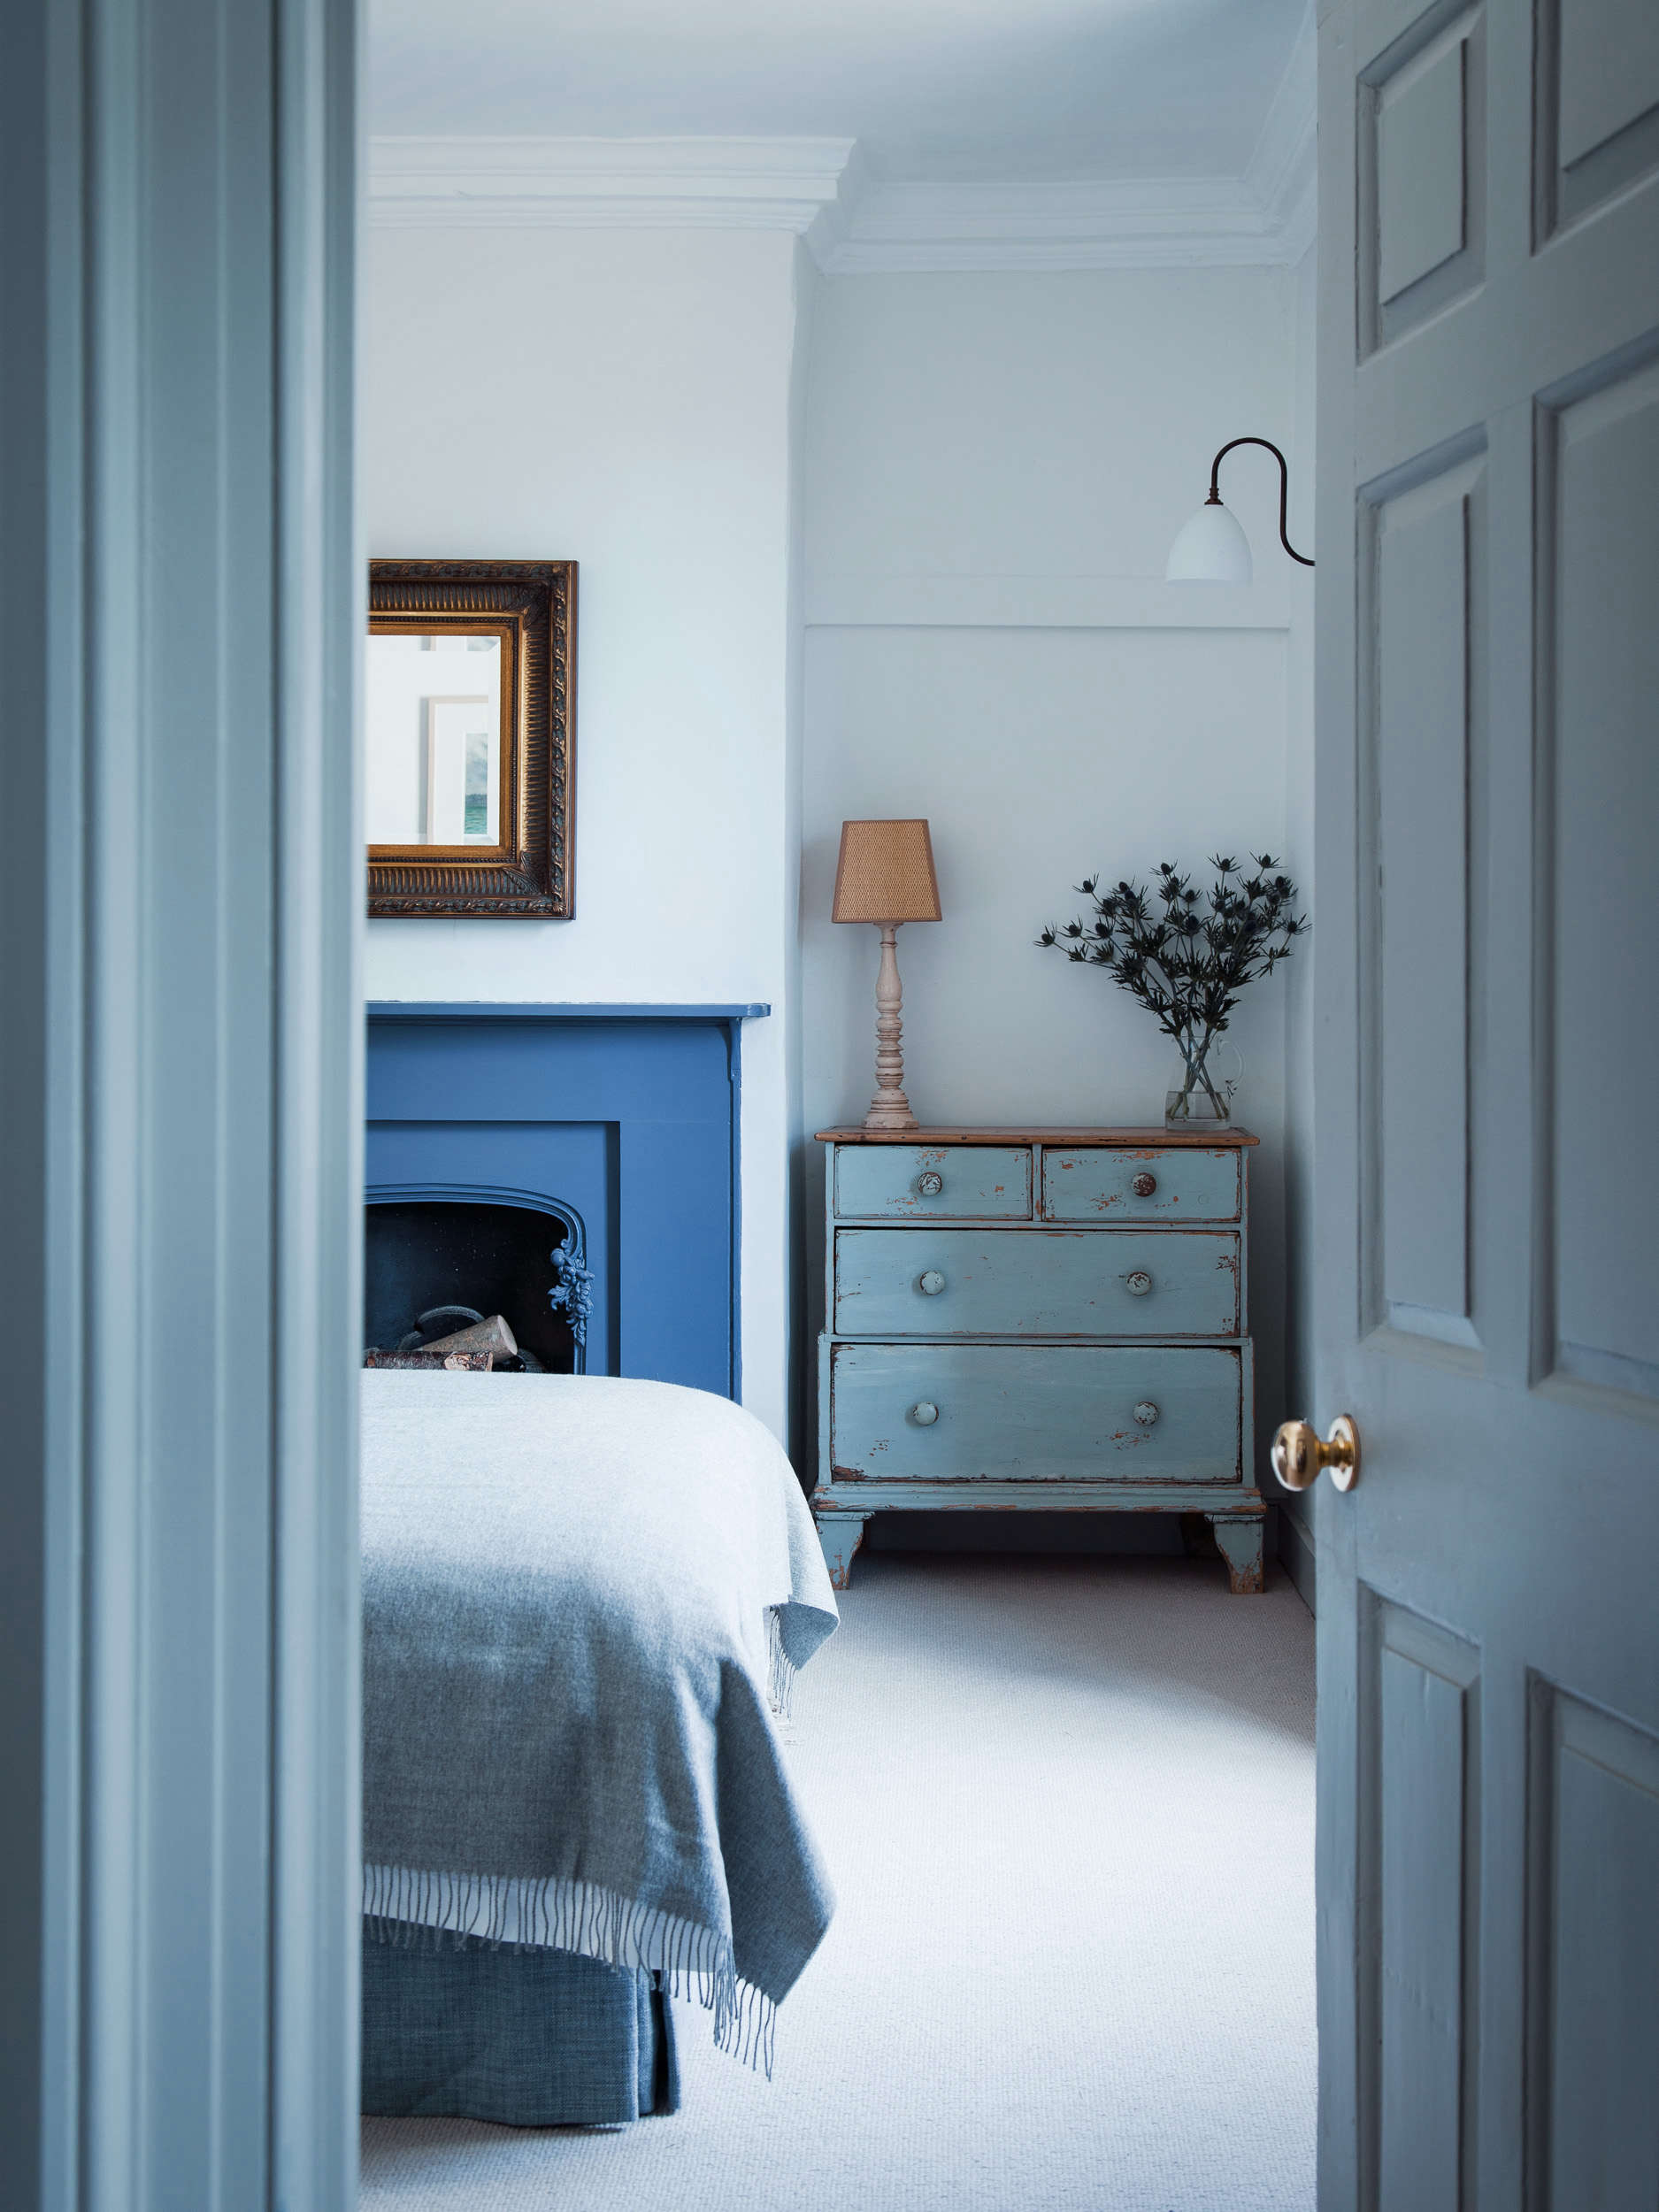 Bedroom with Blue Fireplace in Blue Dorset House by Mark Lewis, Photo by Rory Gardiner